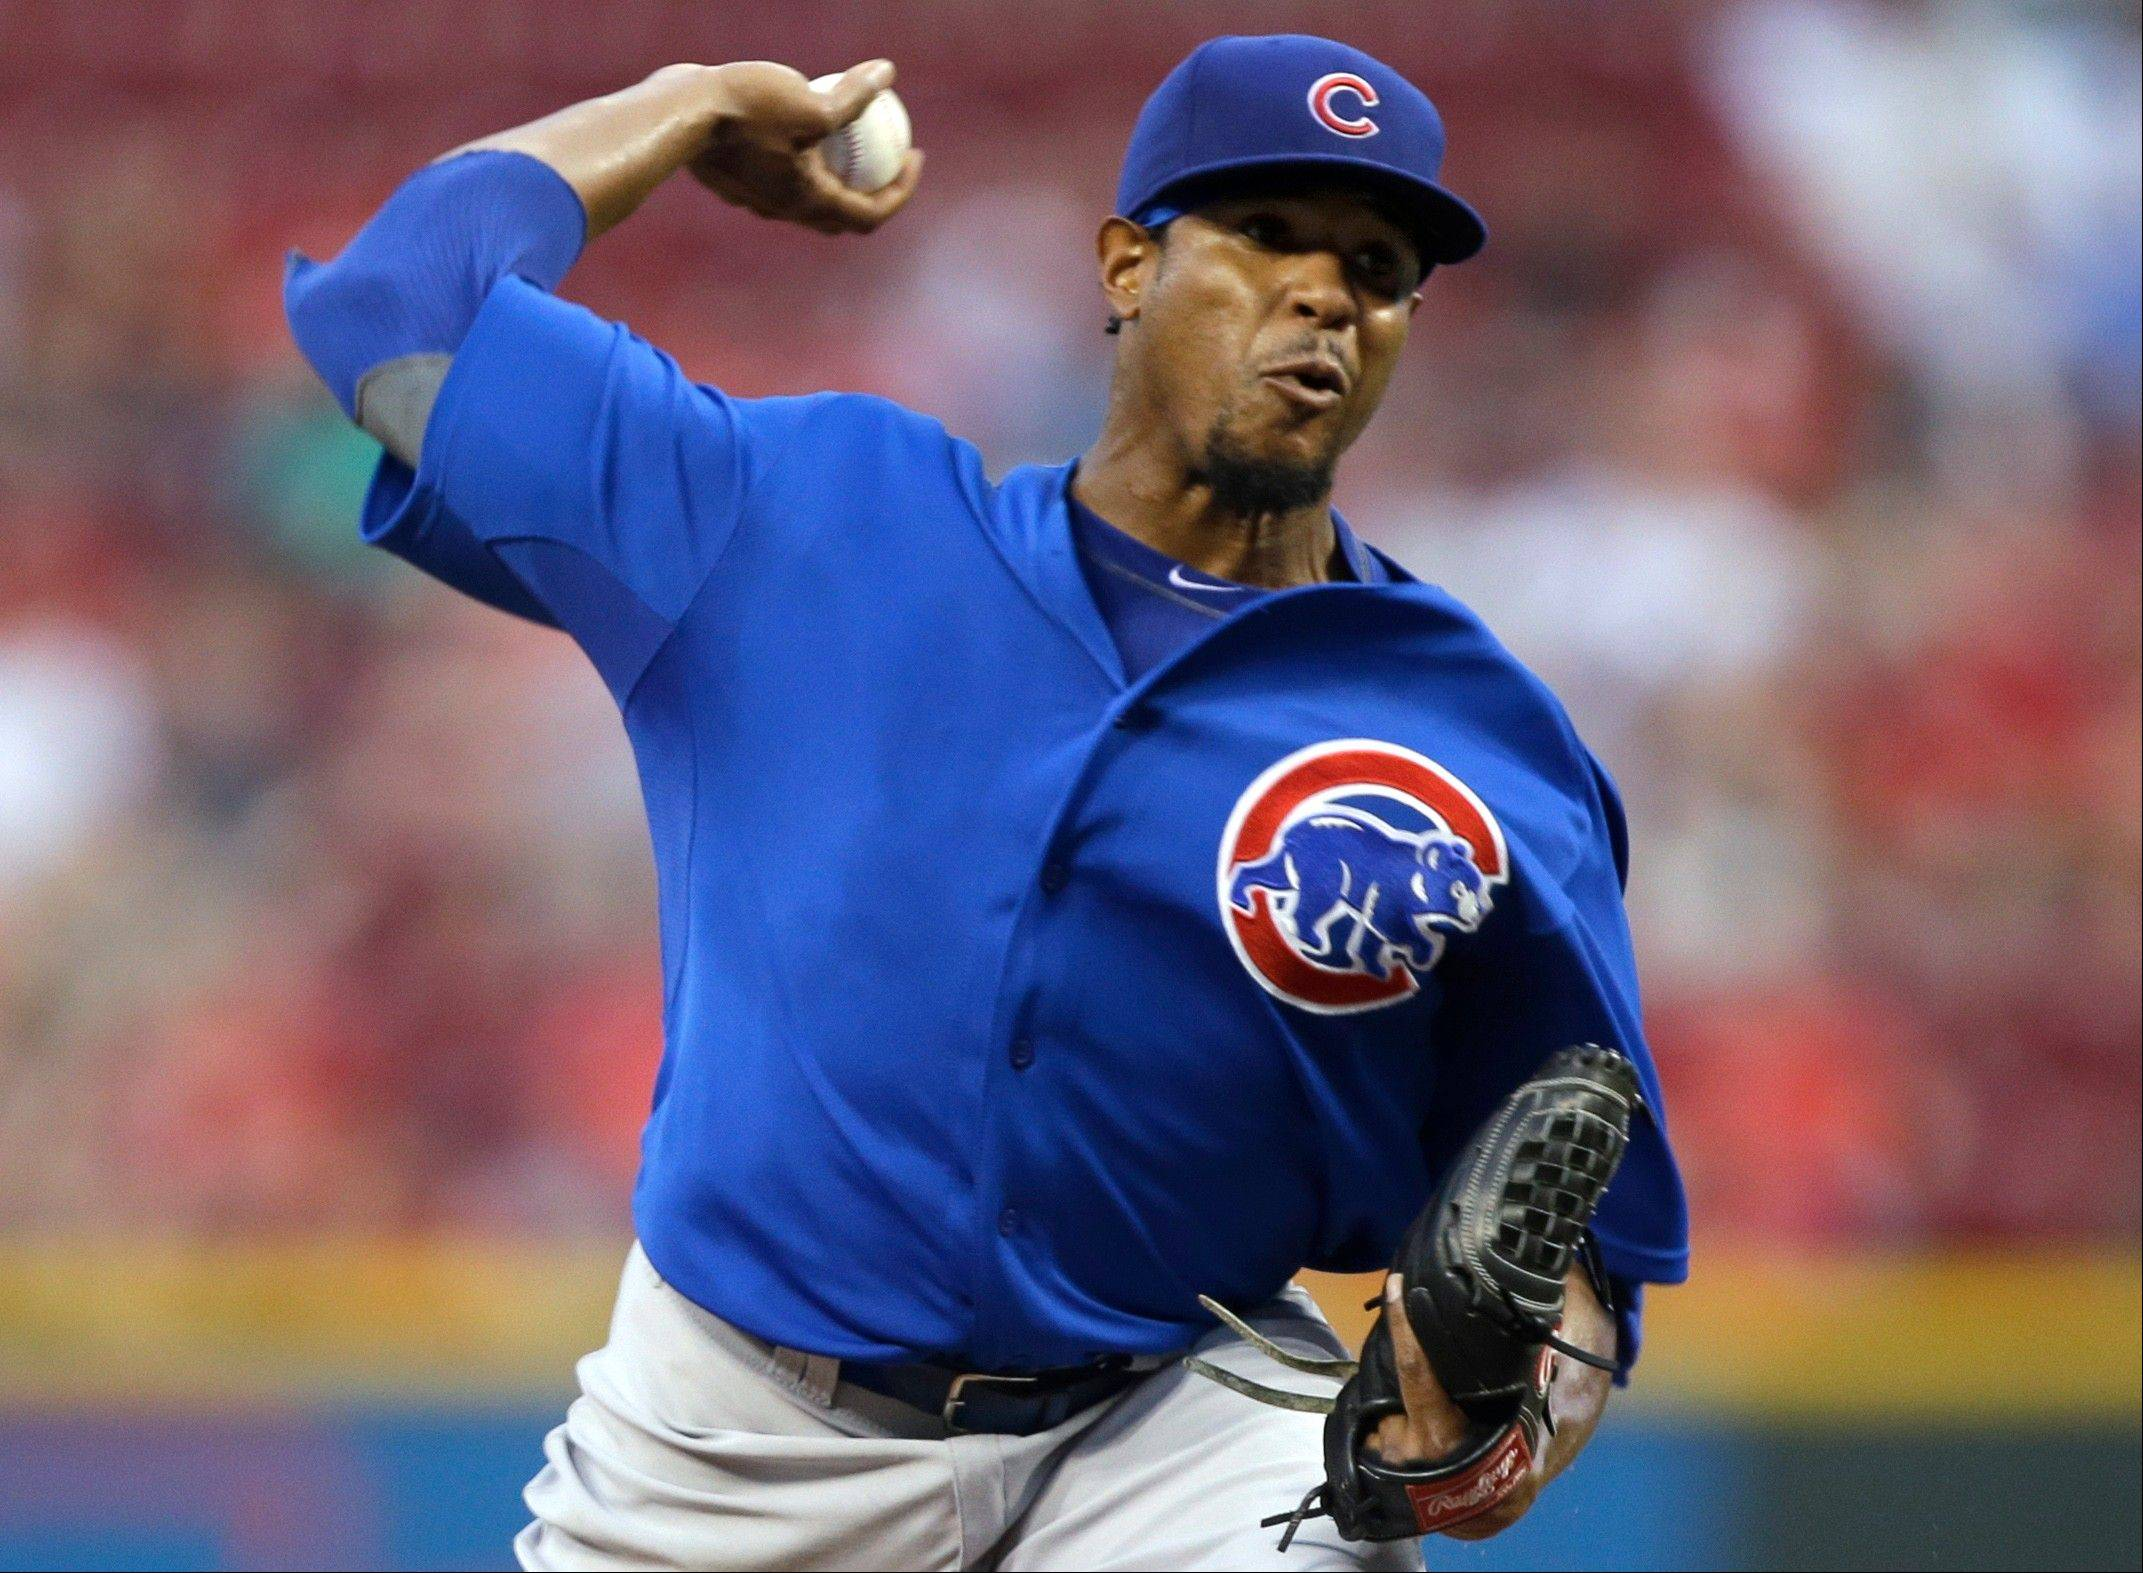 Cubs to finish season with 6-man rotation